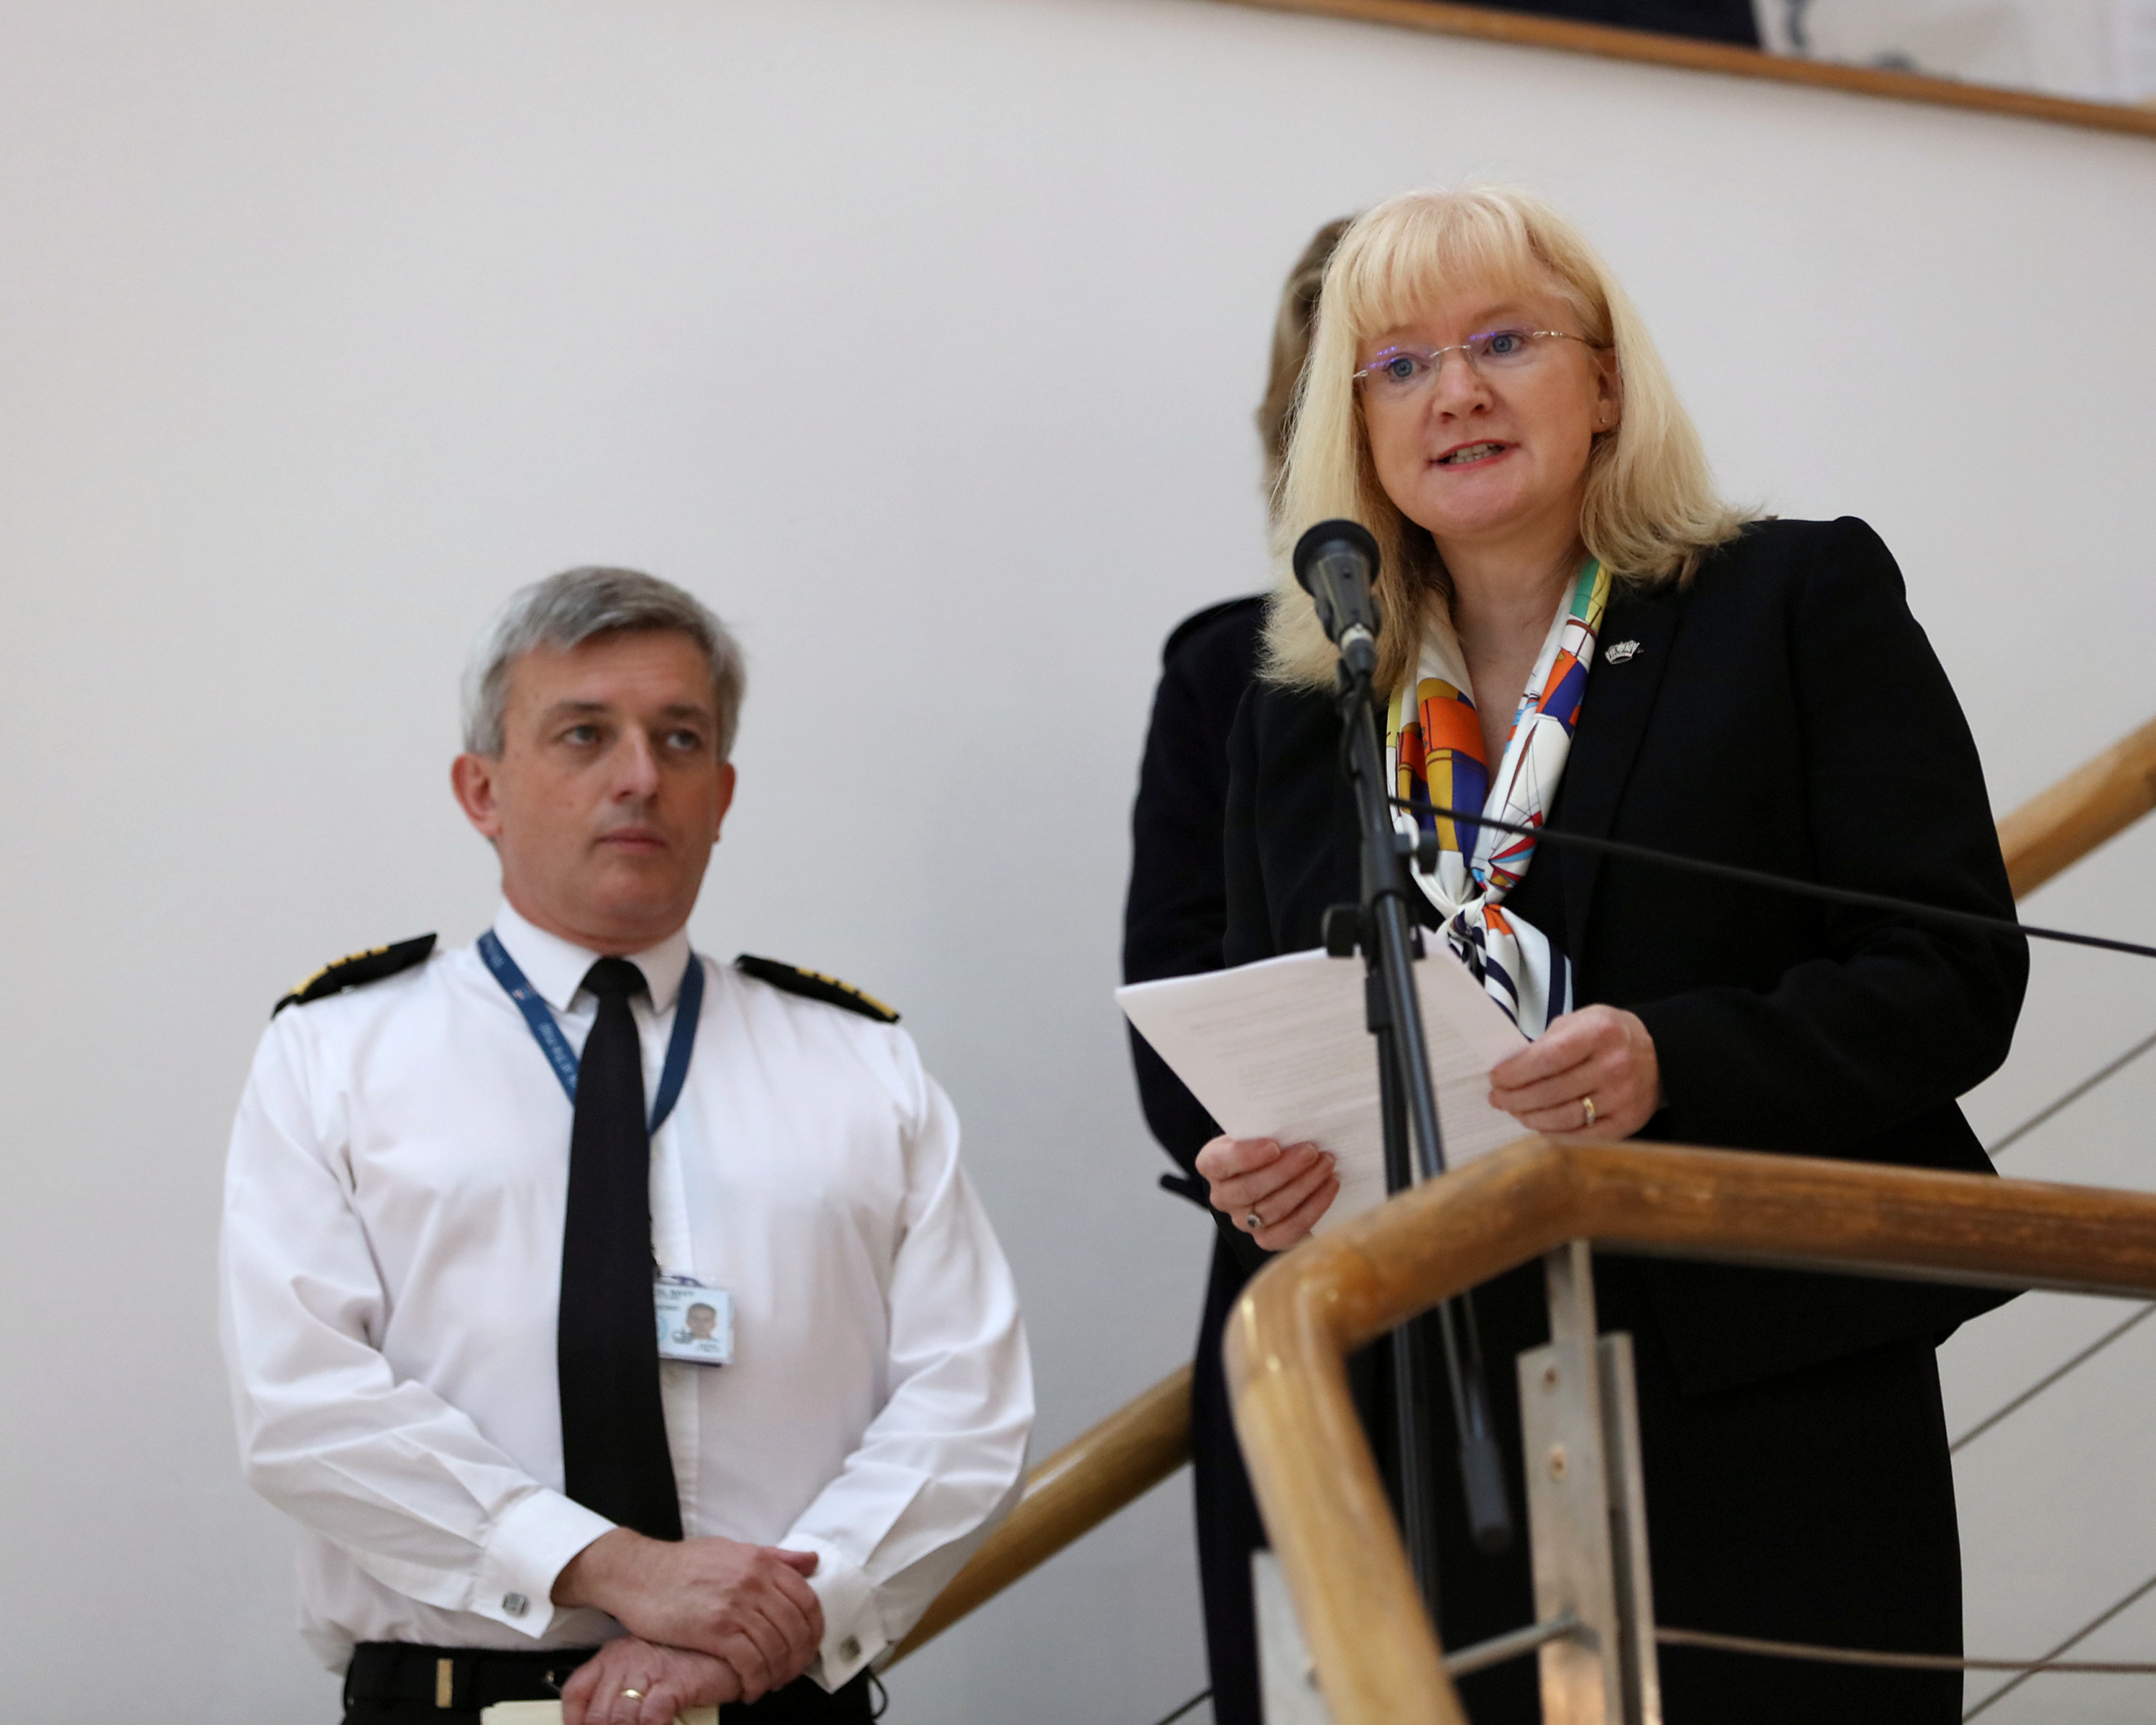 NFF LAUNCH NEW BRANDING AND STRATEGY  Pictured: Director of NFF, Anna Wright, addressing personnel at NCHQ  The Naval Families Federation (NFF) launched their new branding and strategy today, 20th May 2016, in the lower atrium of NCHQ. The First Sea Lord gave an opening address along with the Director of NFF, Anna Wright.   The Armed Forces Minister, Penny Mordaunt MP, was also in attendance.  Image: L(Phot) Paul Hall